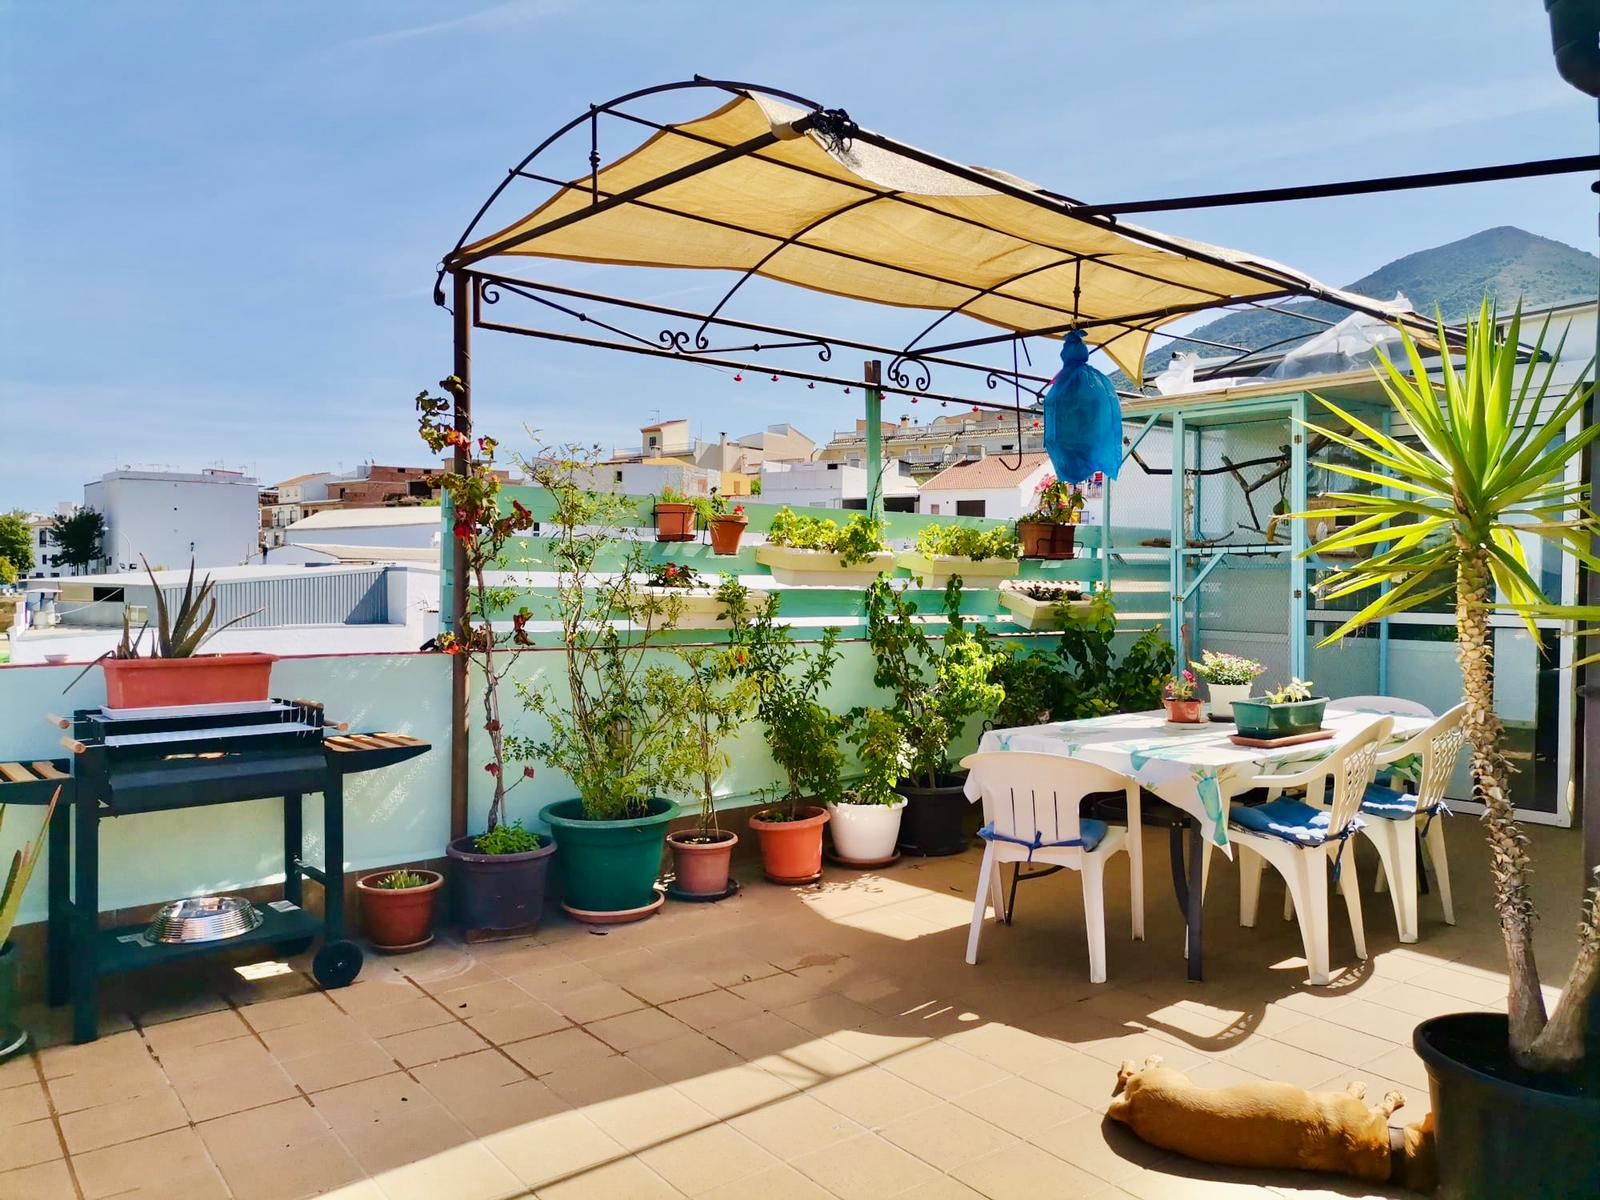 Ri 695 Spacious two bedroom attic apartment with views and roof terrace – 700€